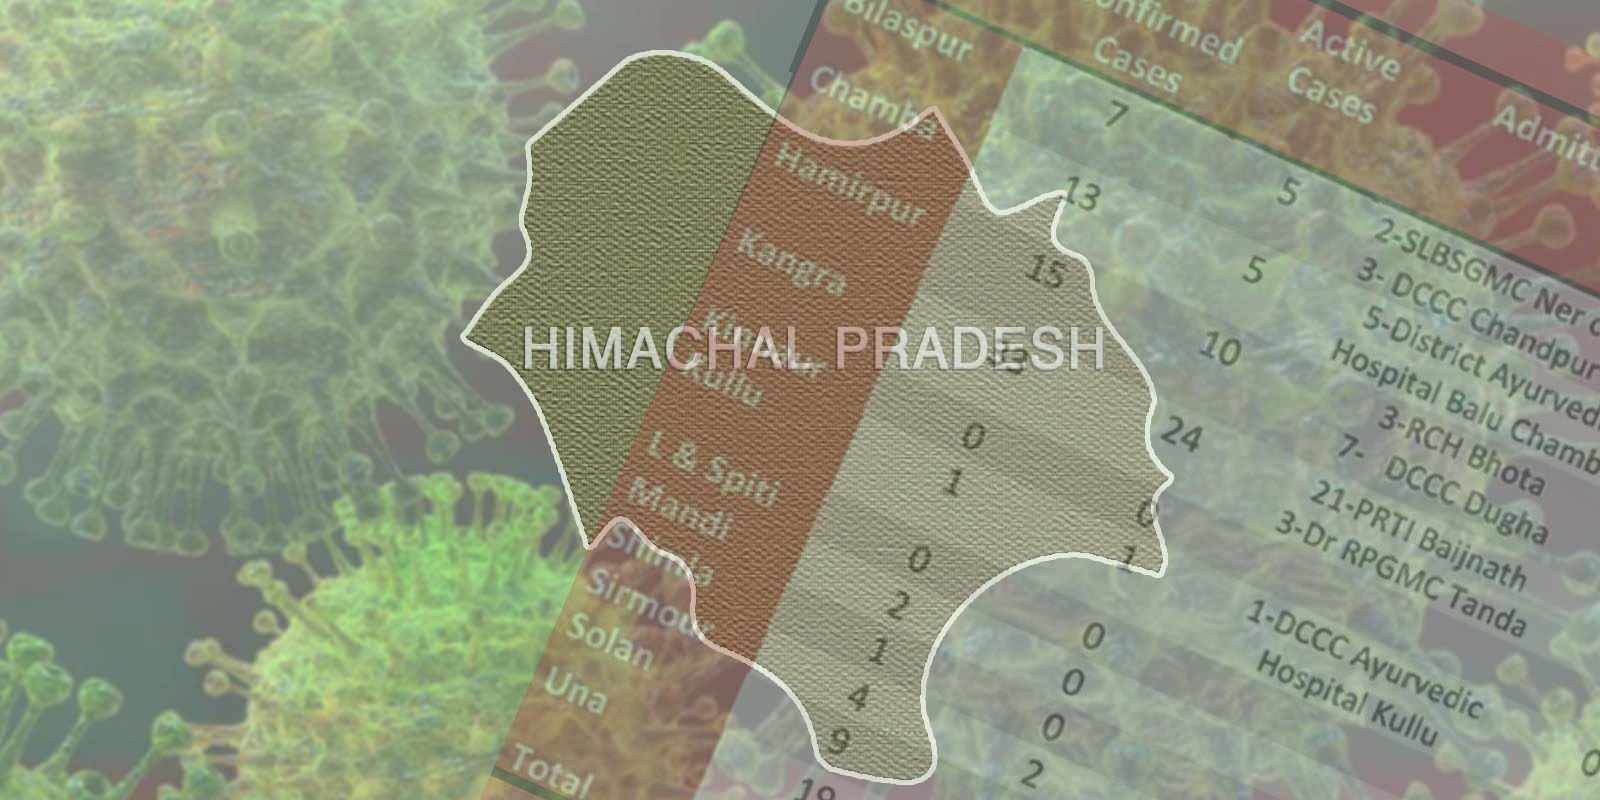 12 corona cases in himachal in one day